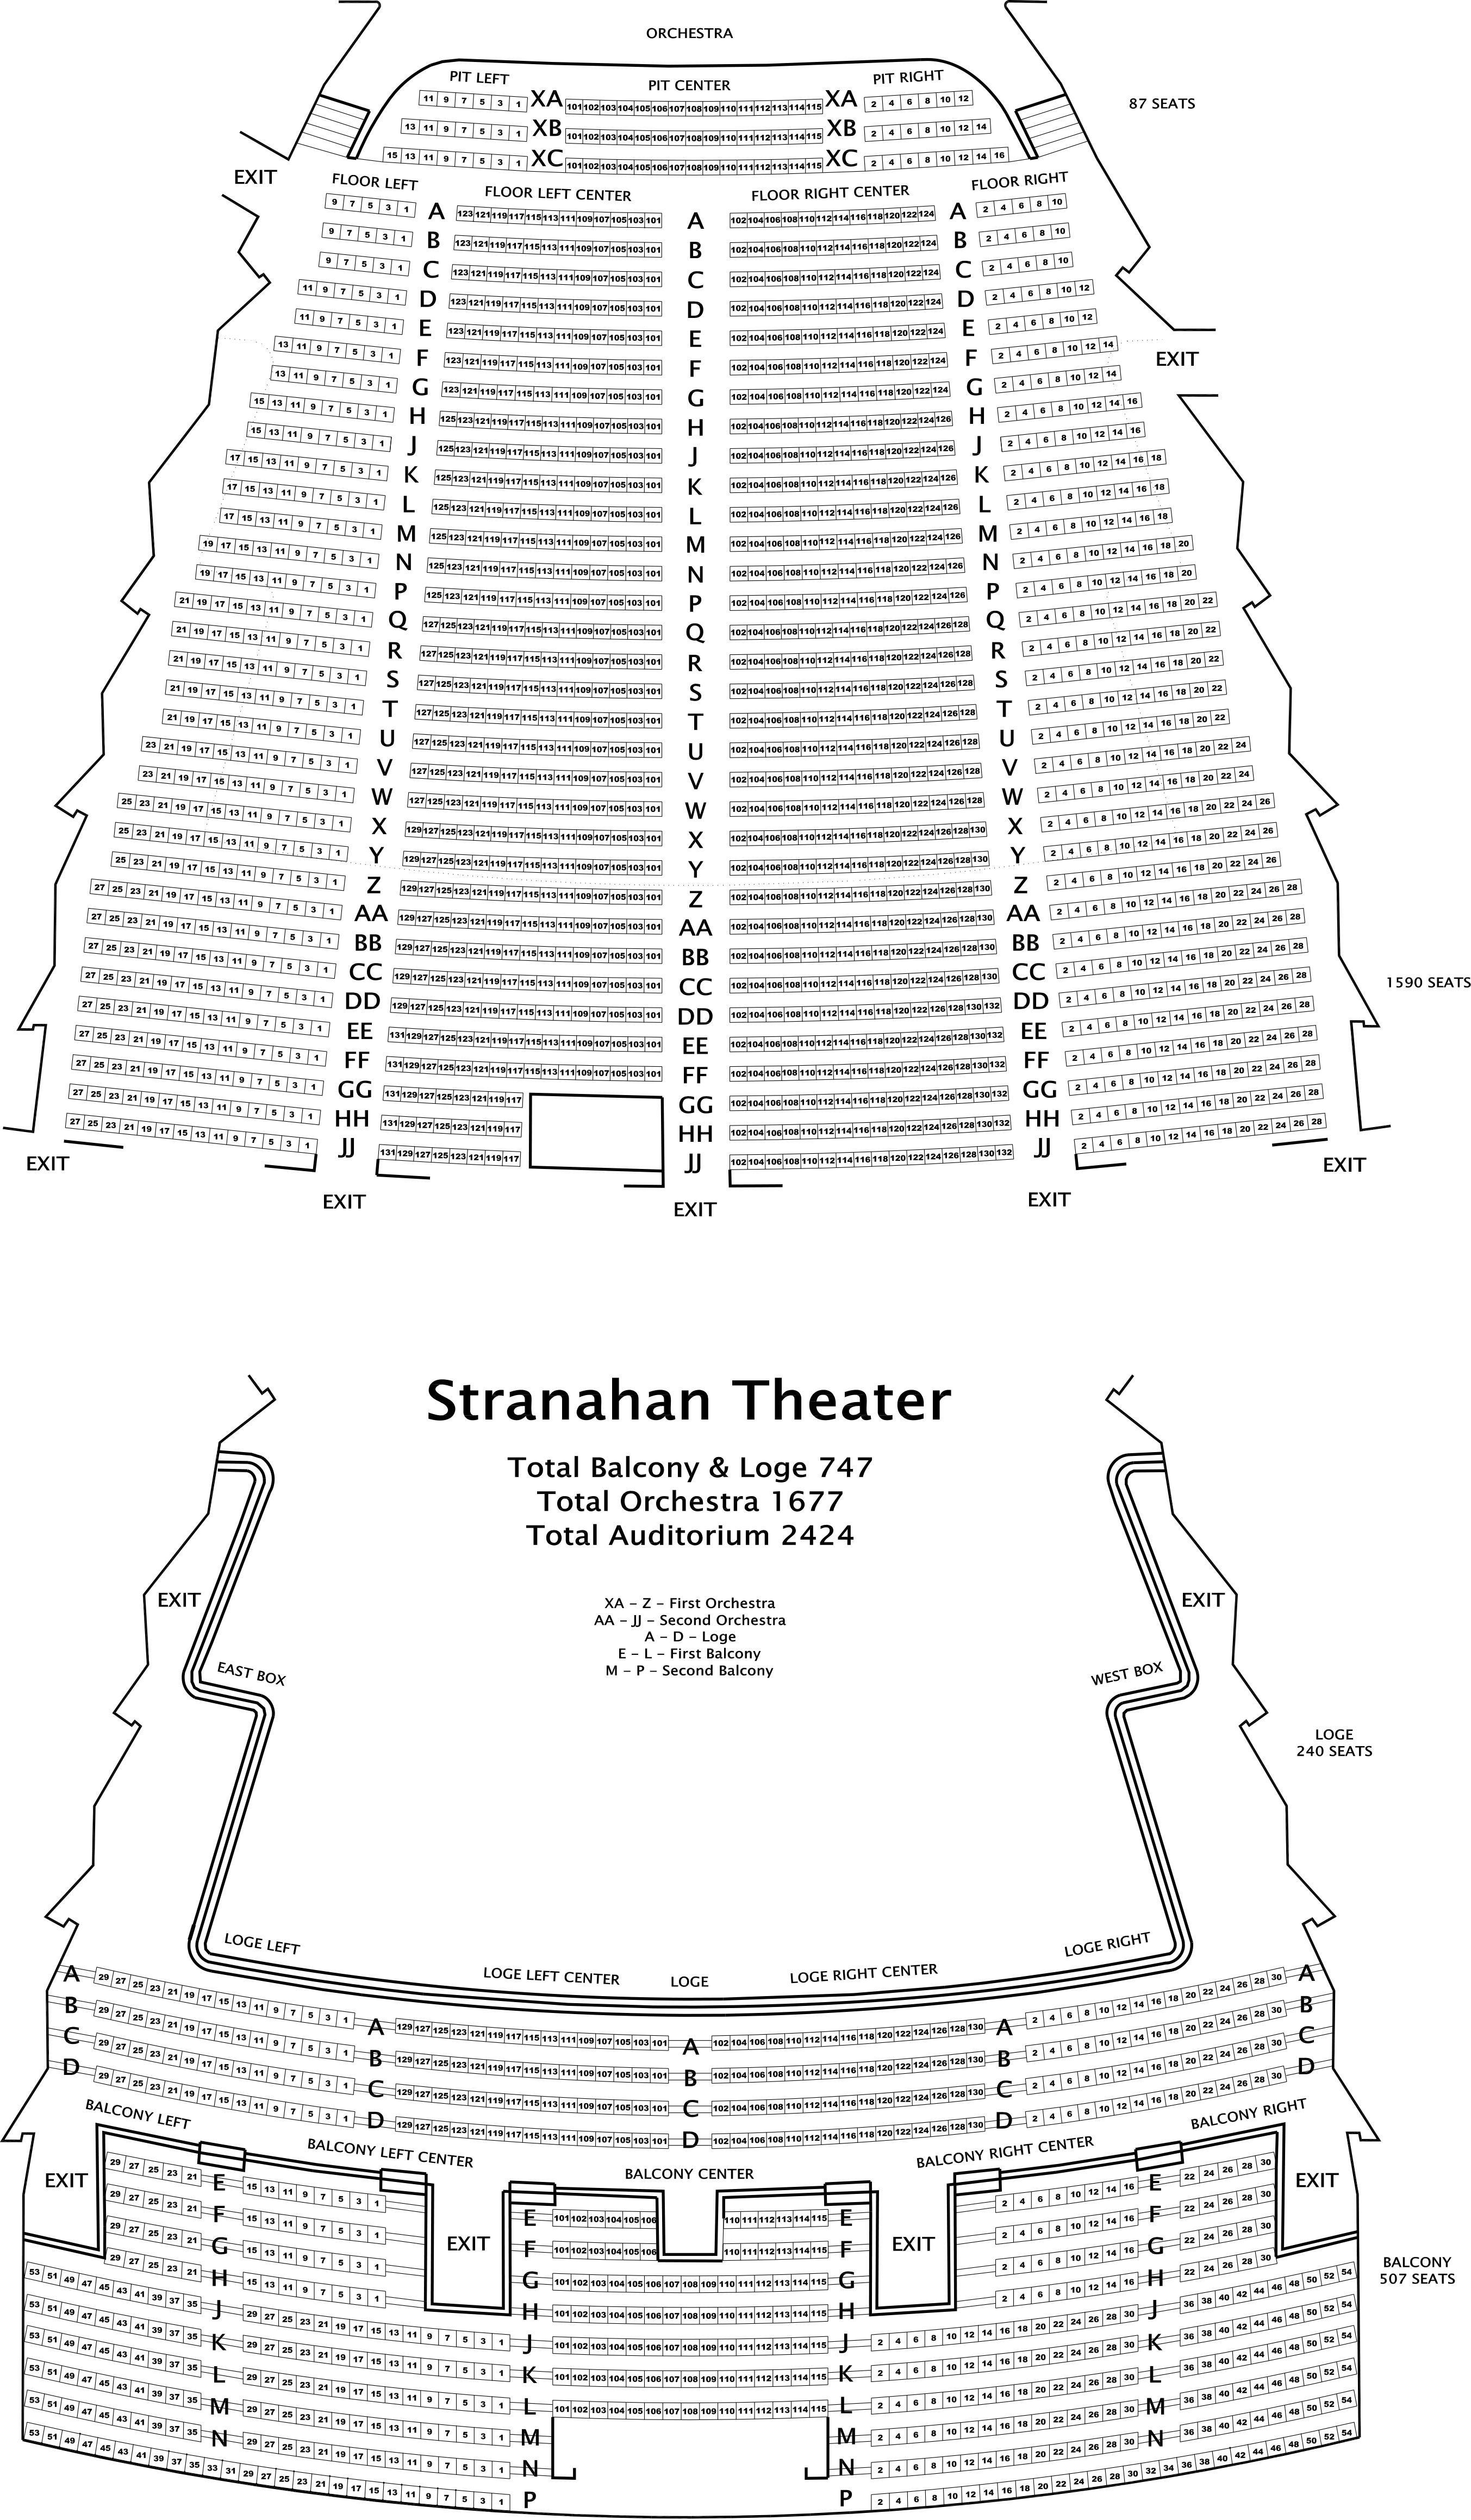 Stranahan theater cleveland tickets schedule seating charts